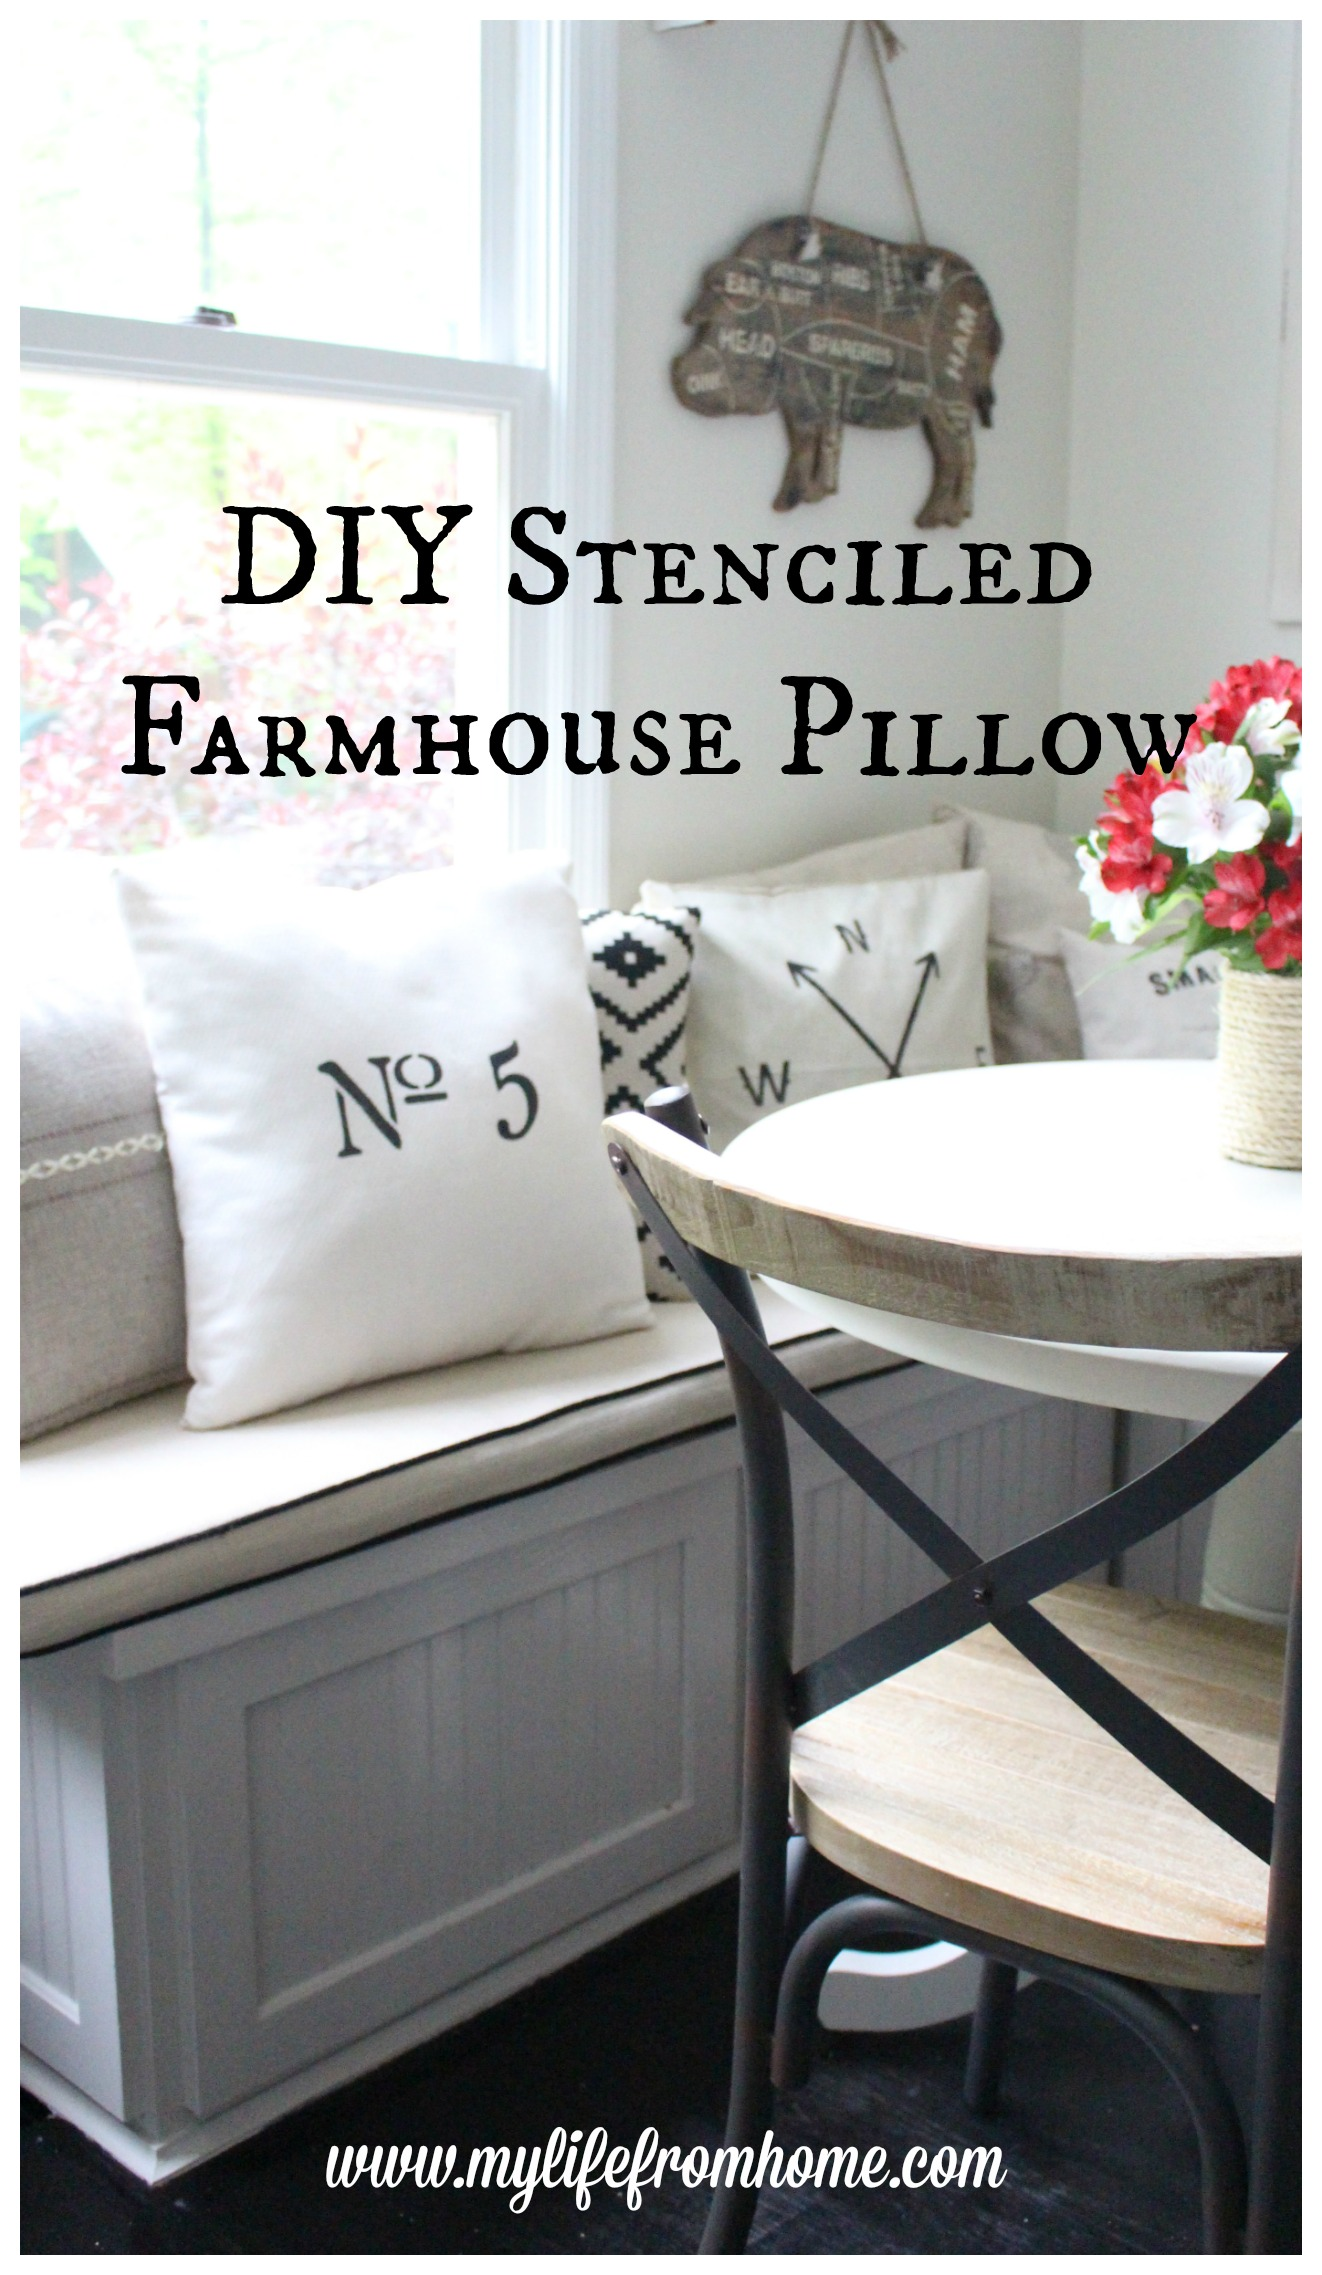 DIY Stenciled Farmhouse Pillow My Life From Home www.mylifefromhome.com